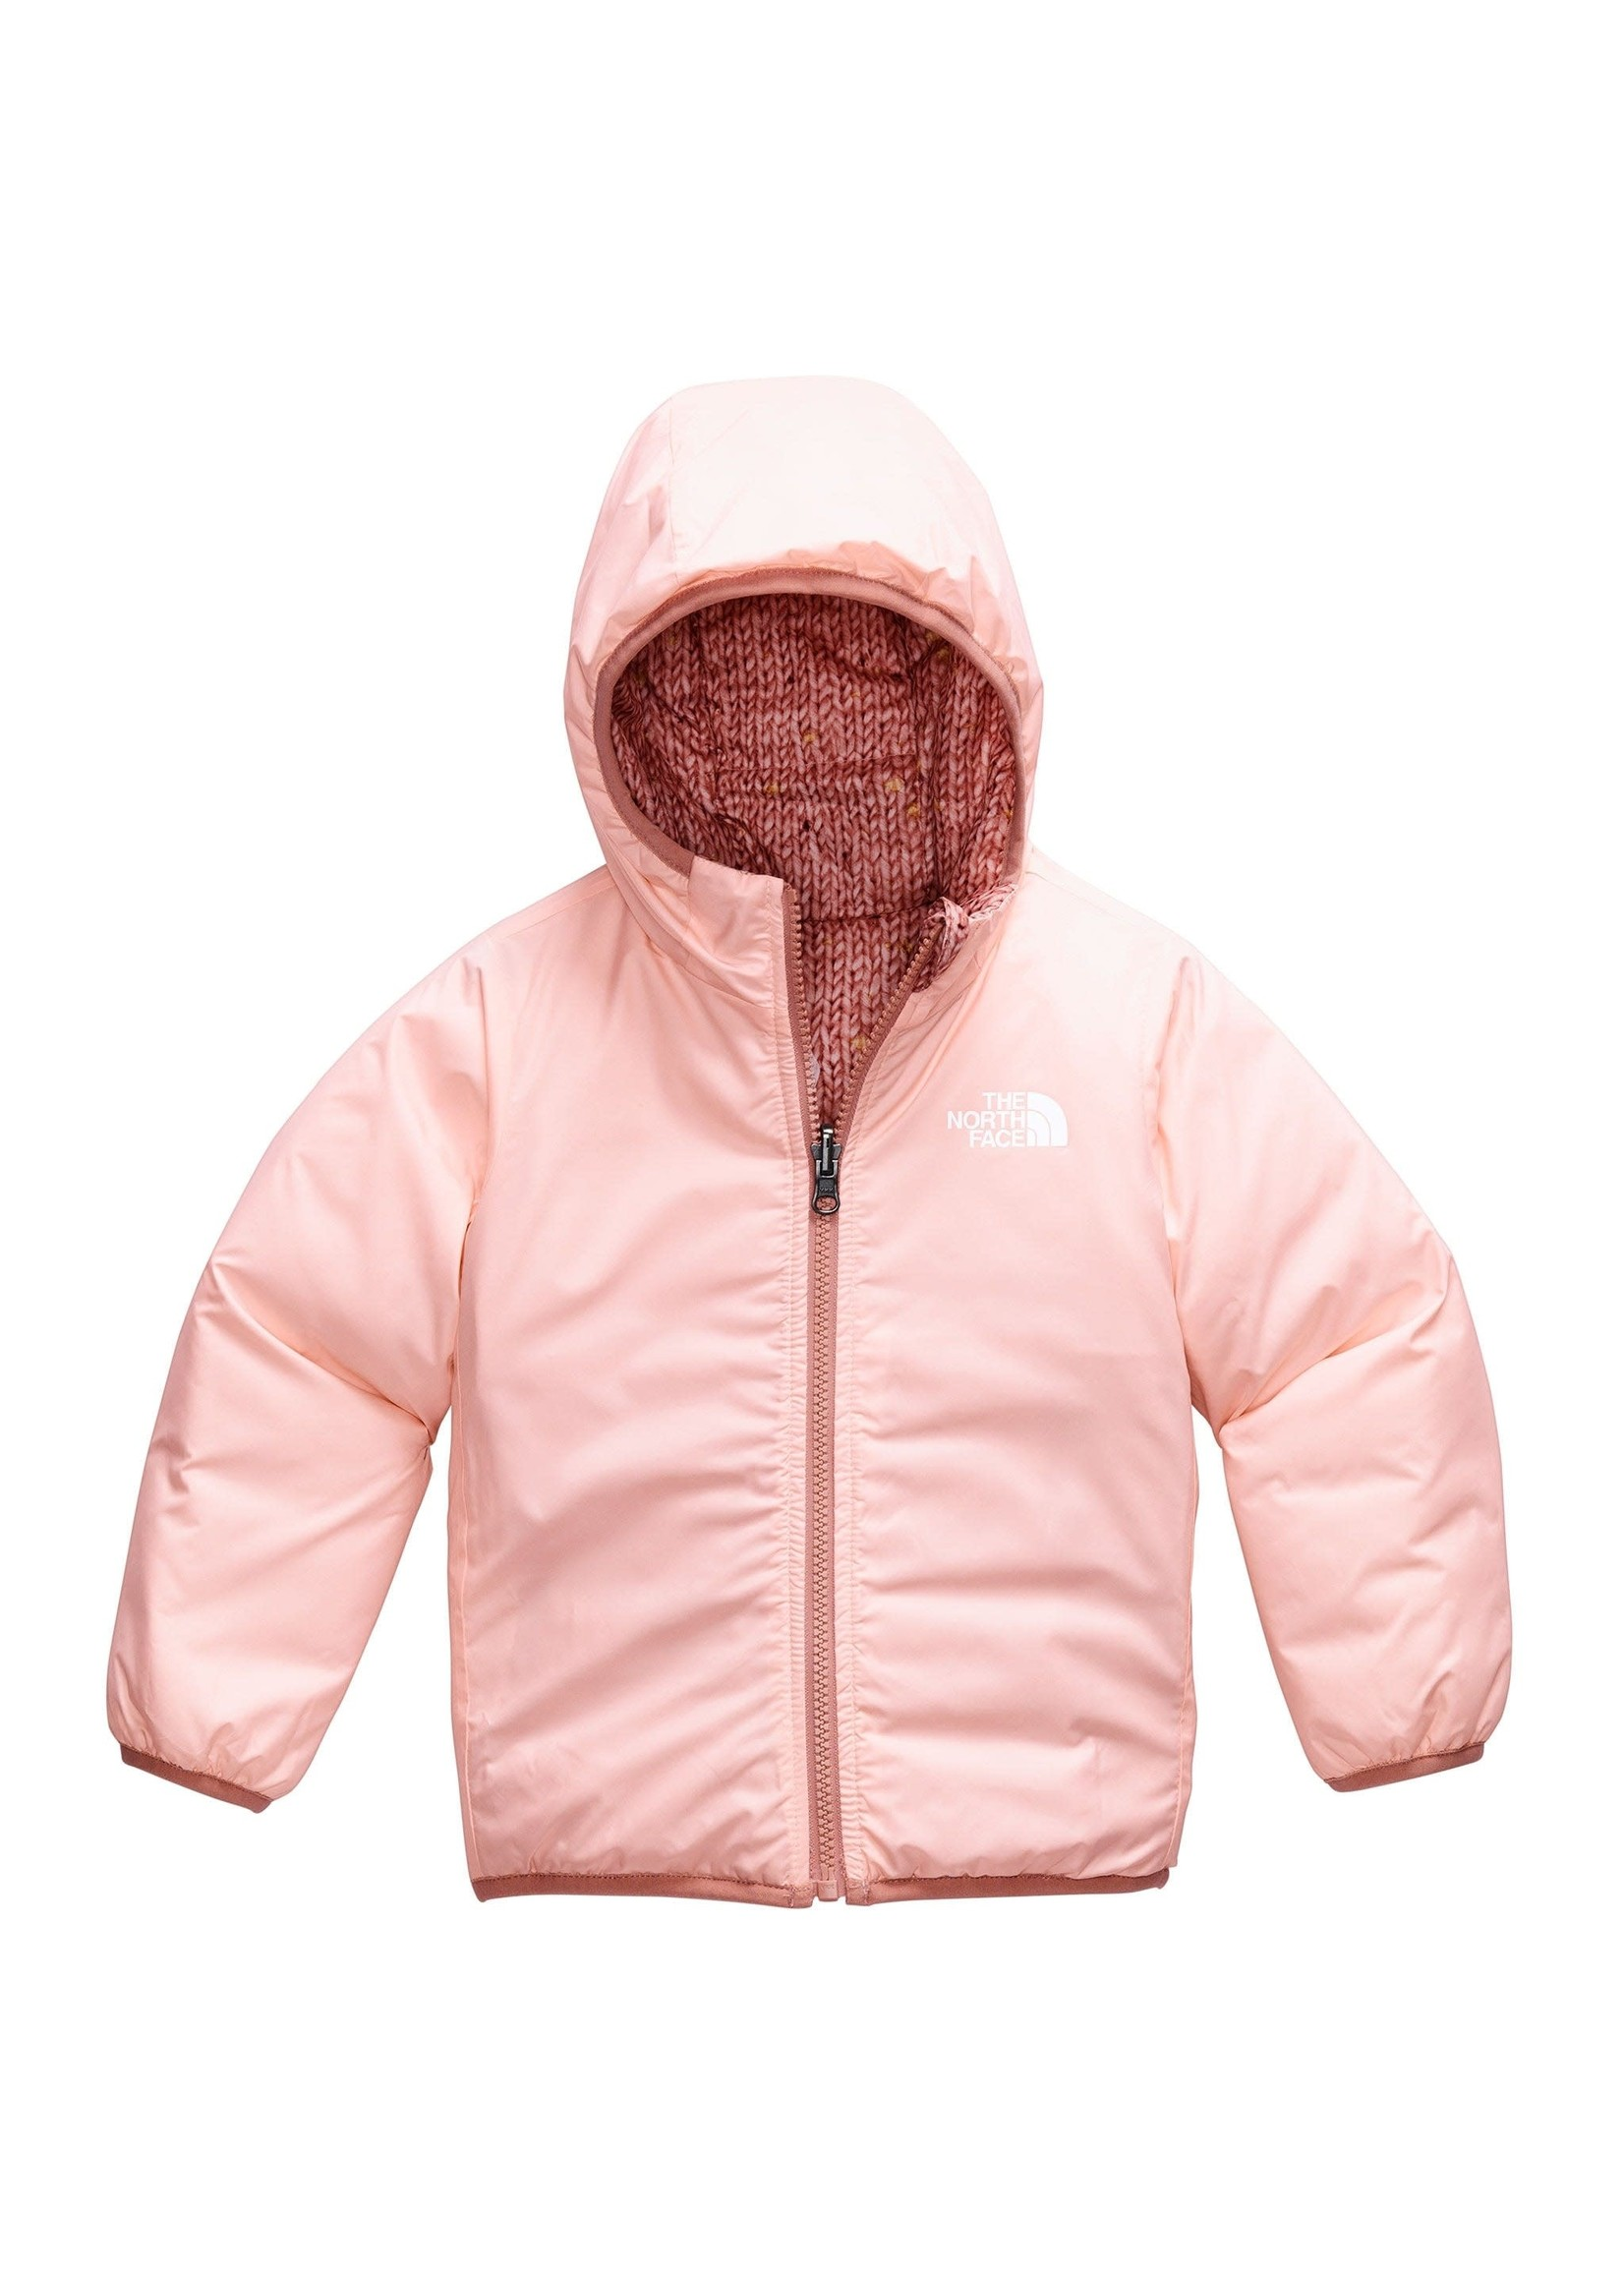 THE NORTH FACE Veste réversible Perrito / 4T / Rose